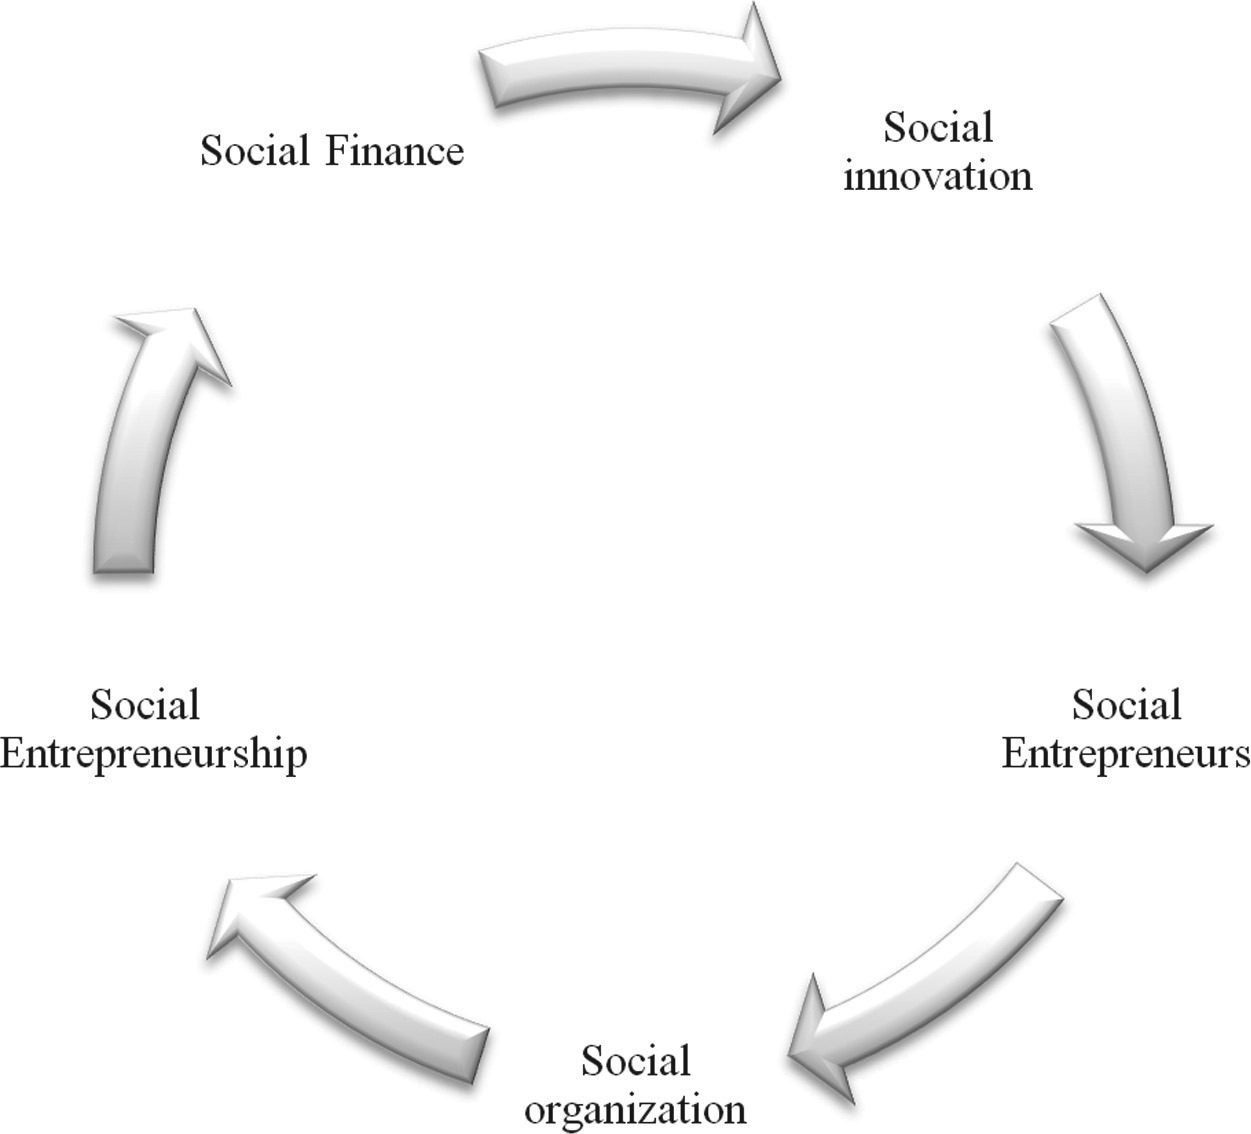 The influence of social finance